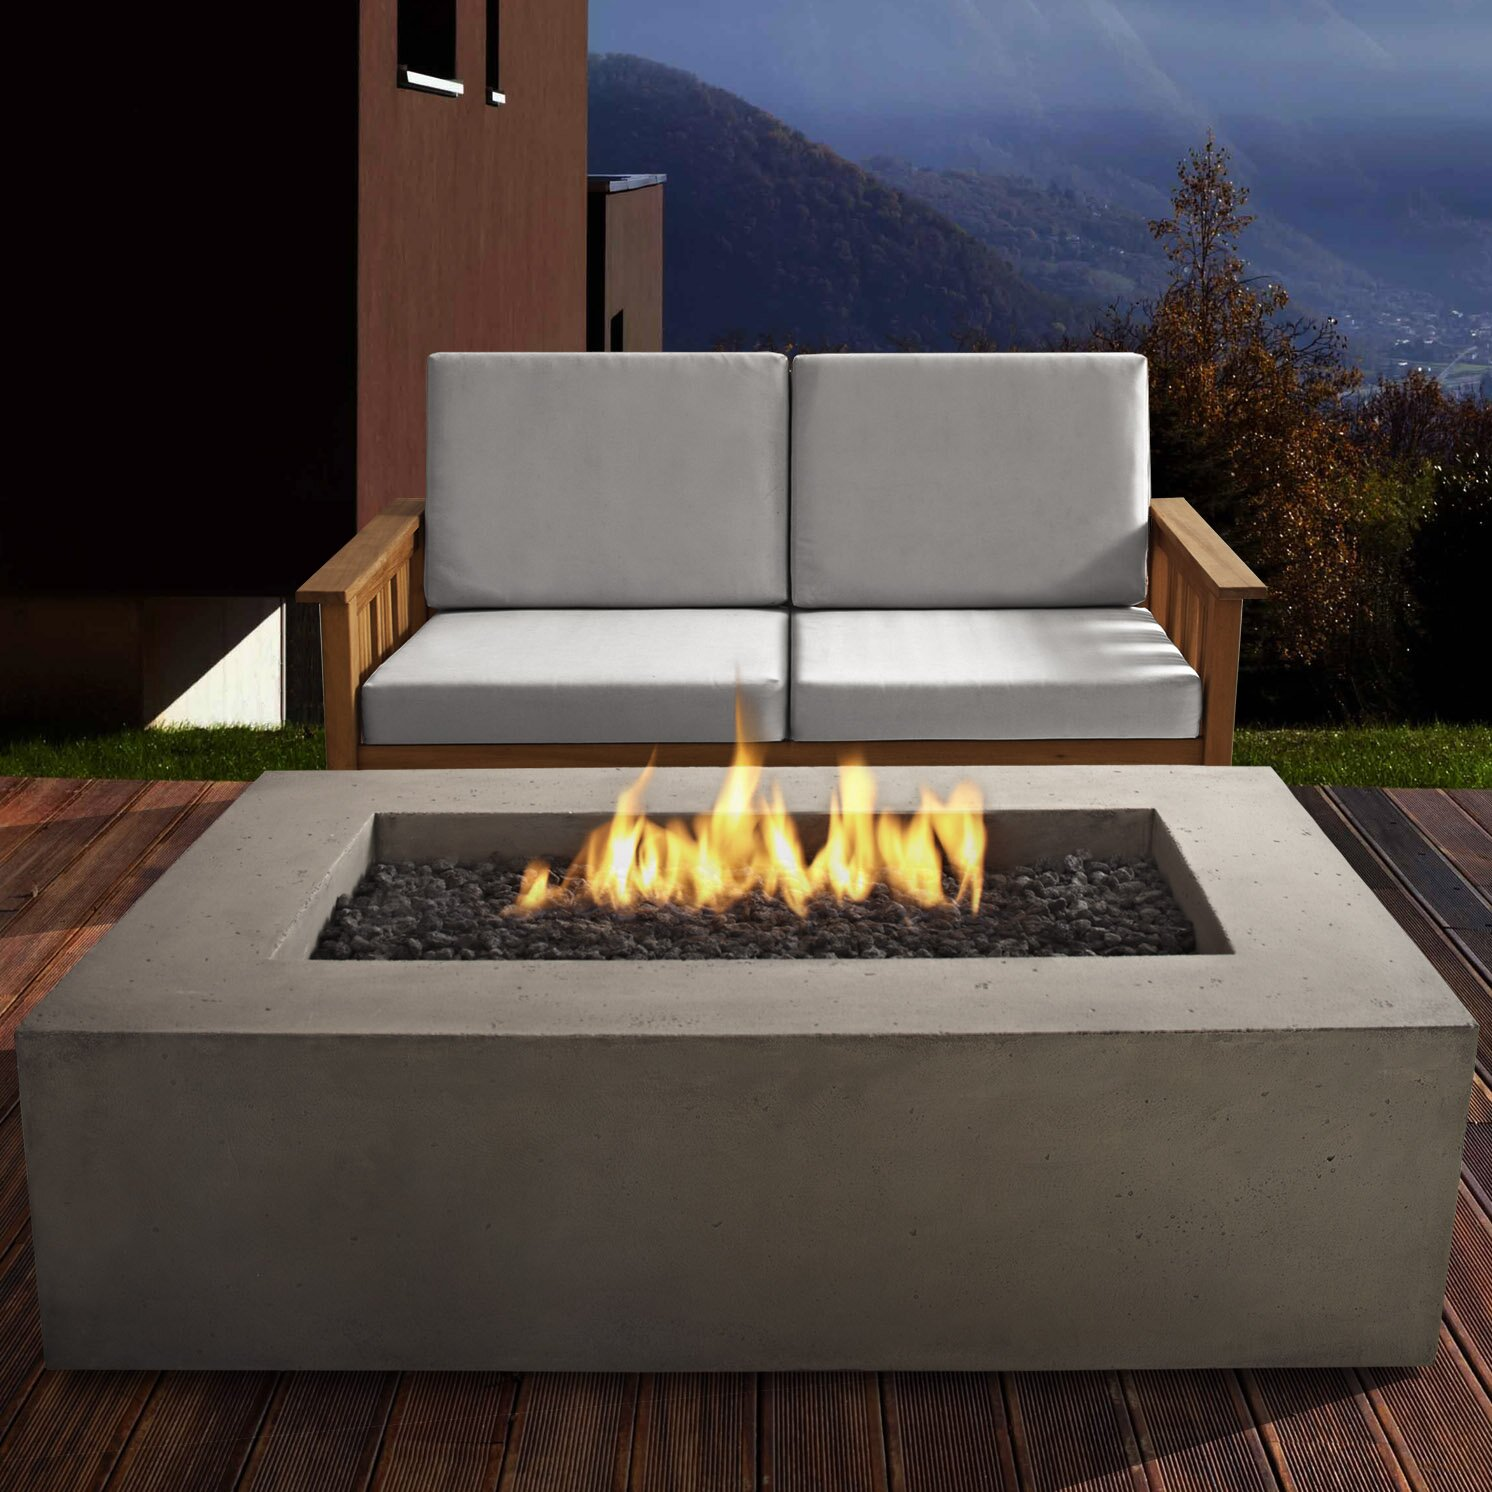 Propane fire pit on wood deck - Baltic Rectangle Propane Fire Pit Table